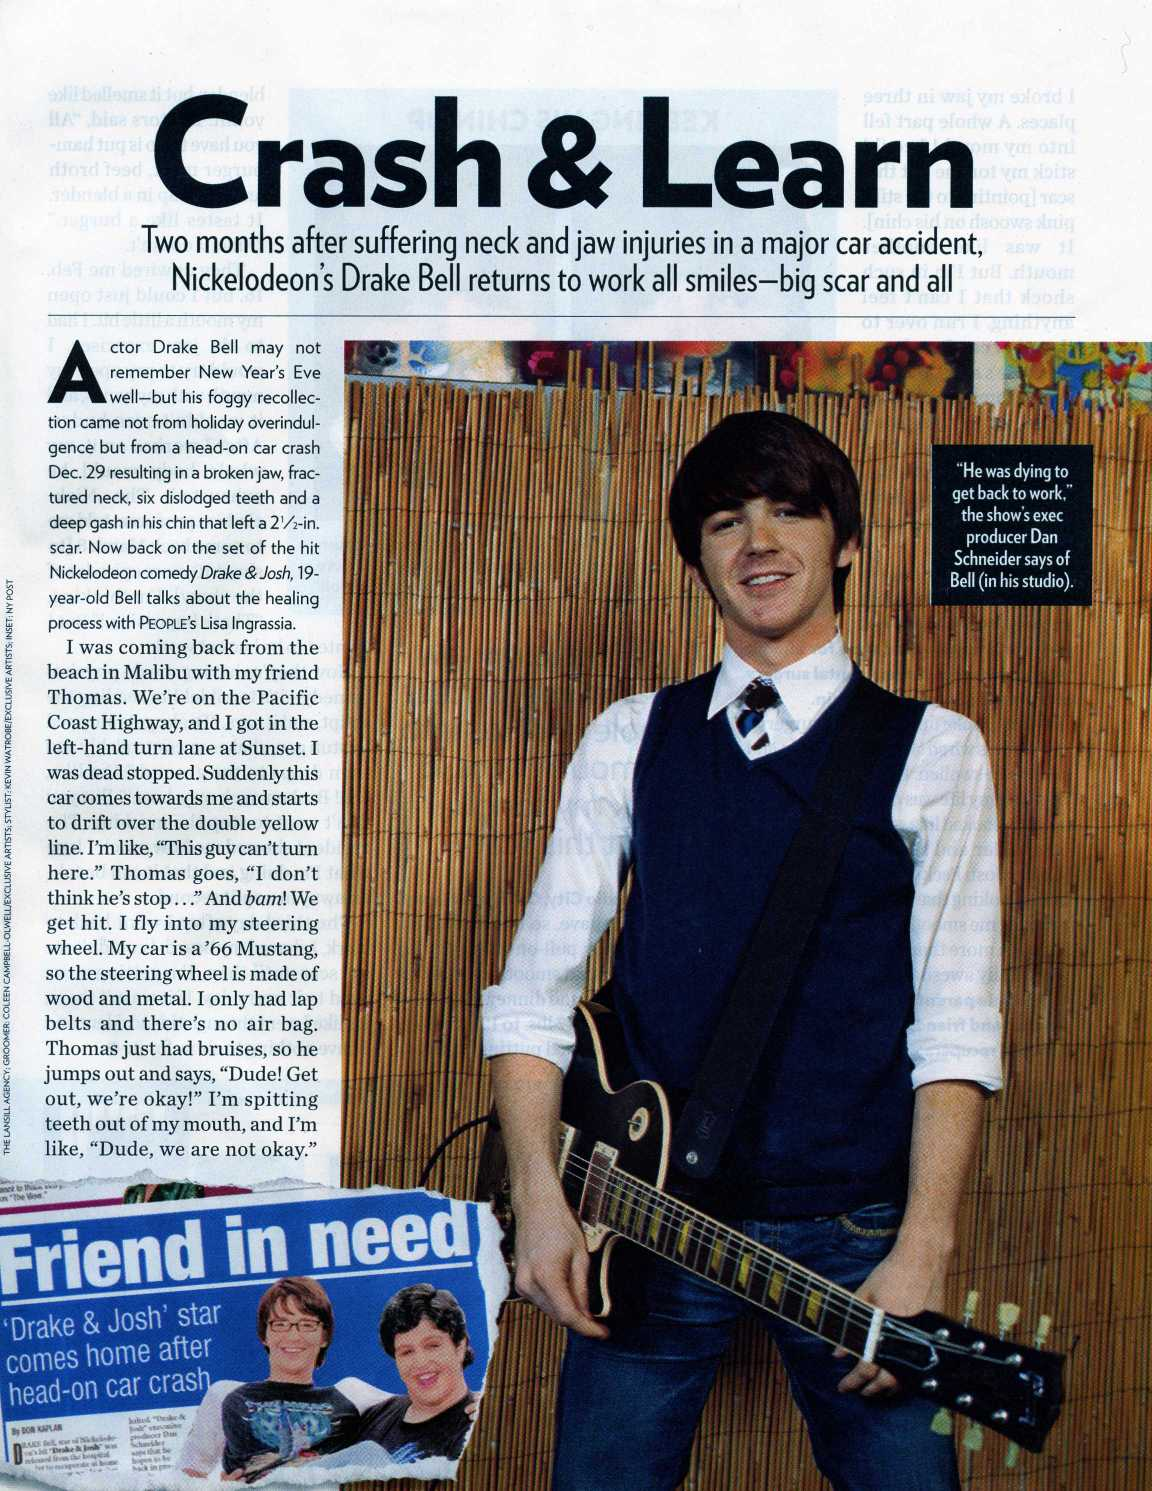 the drake bell car crash story fear of bliss